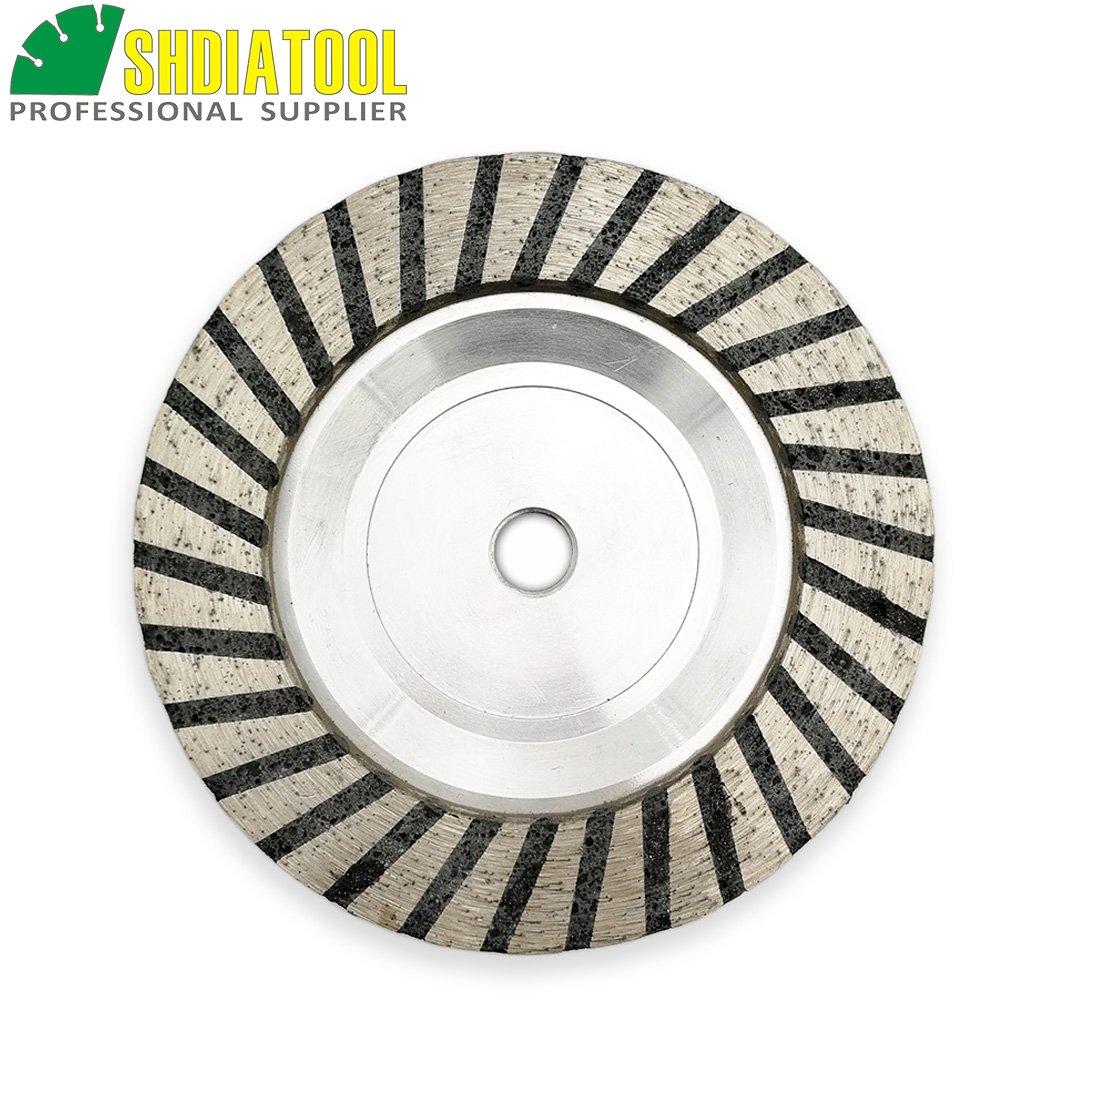 SHDIATOOL 1pc Dia 5 125mm M14 or 5 8 11 Connection Aluminum Based Grinding Cup Wheel